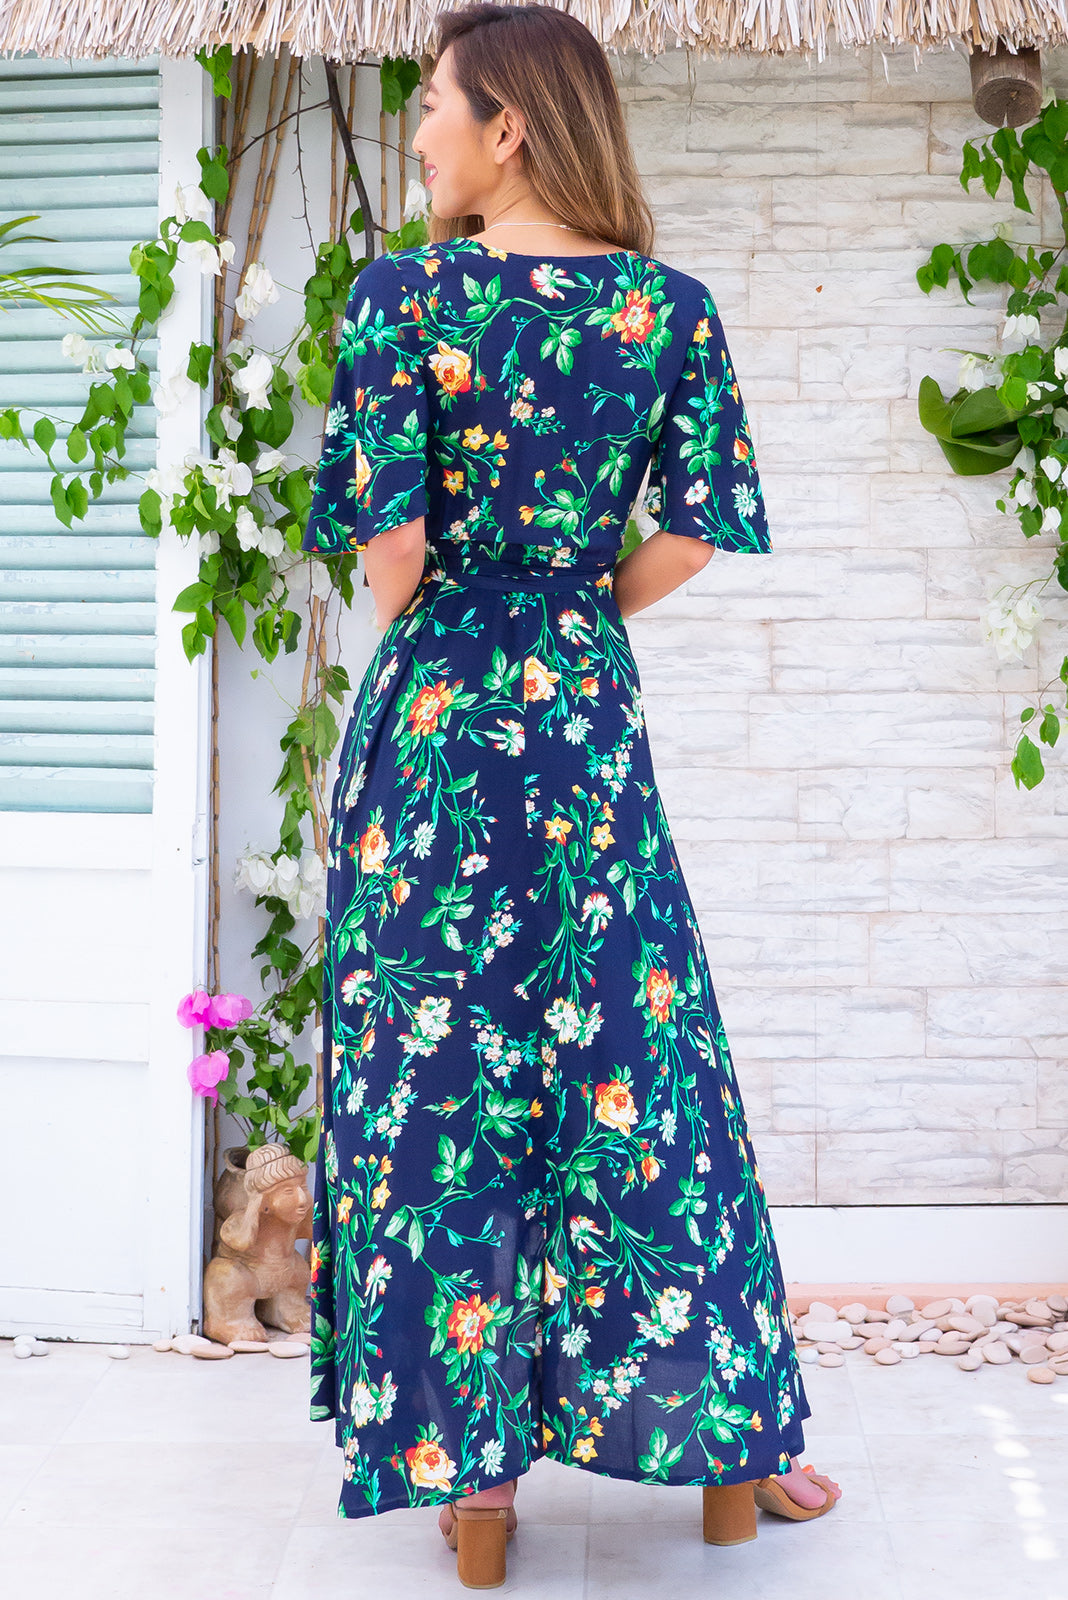 Petal Cotswold Navy Maxi Wrap Dress, ideal events or date night dress features scooped hemline, adjustable wrap design, flutter sleeves, dark navy base, red/yellow vintage rose print in woven 100% rayon.